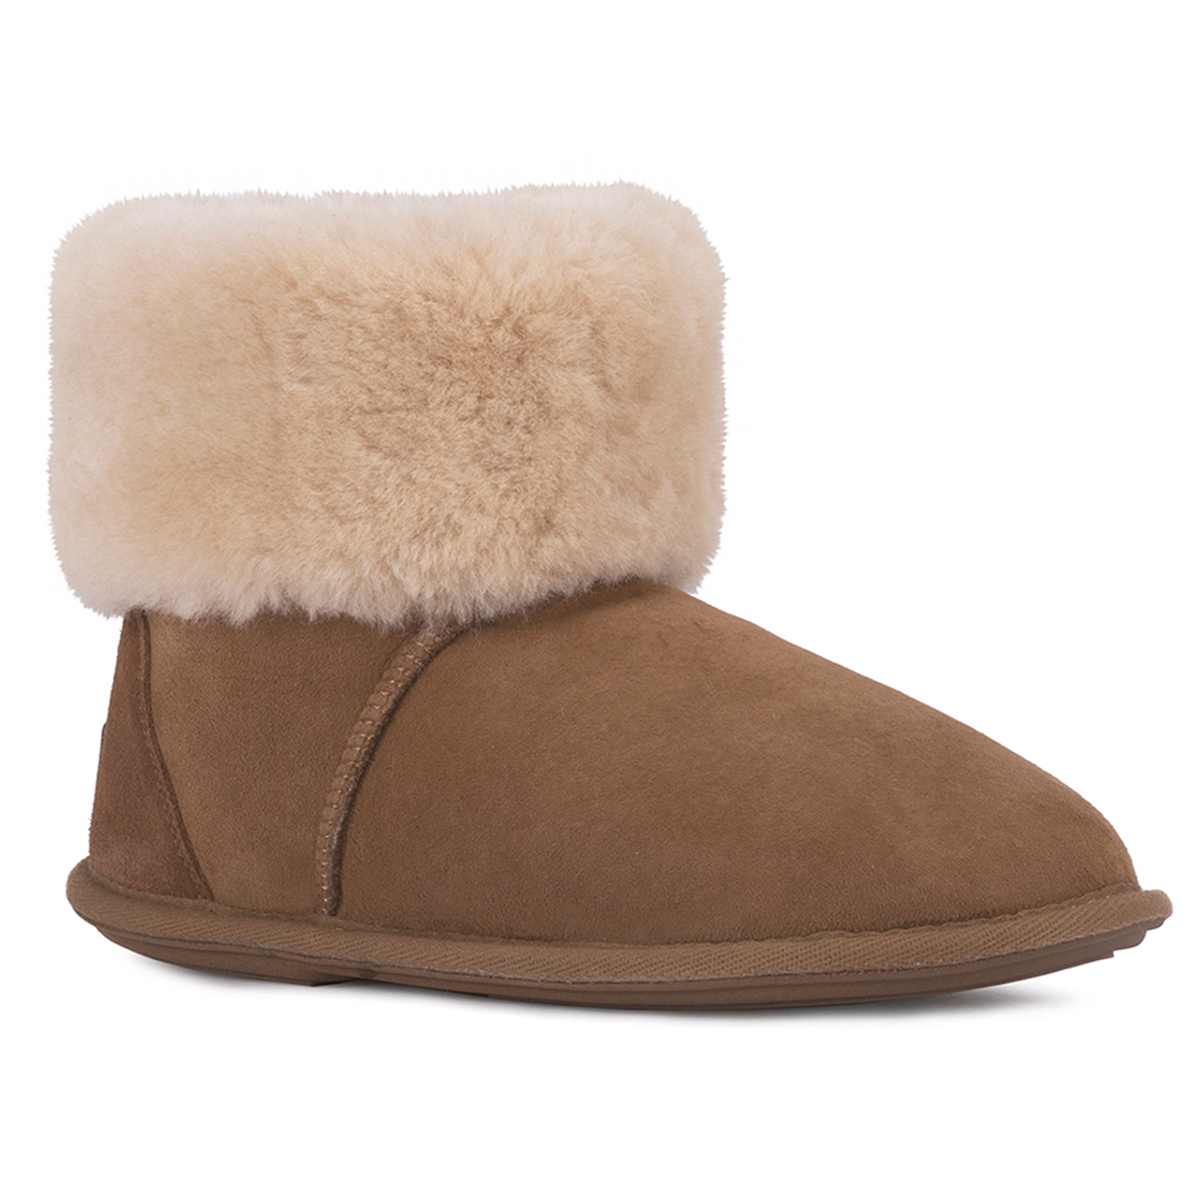 00ae430548a Ladies Albery Sheepskin Slippers